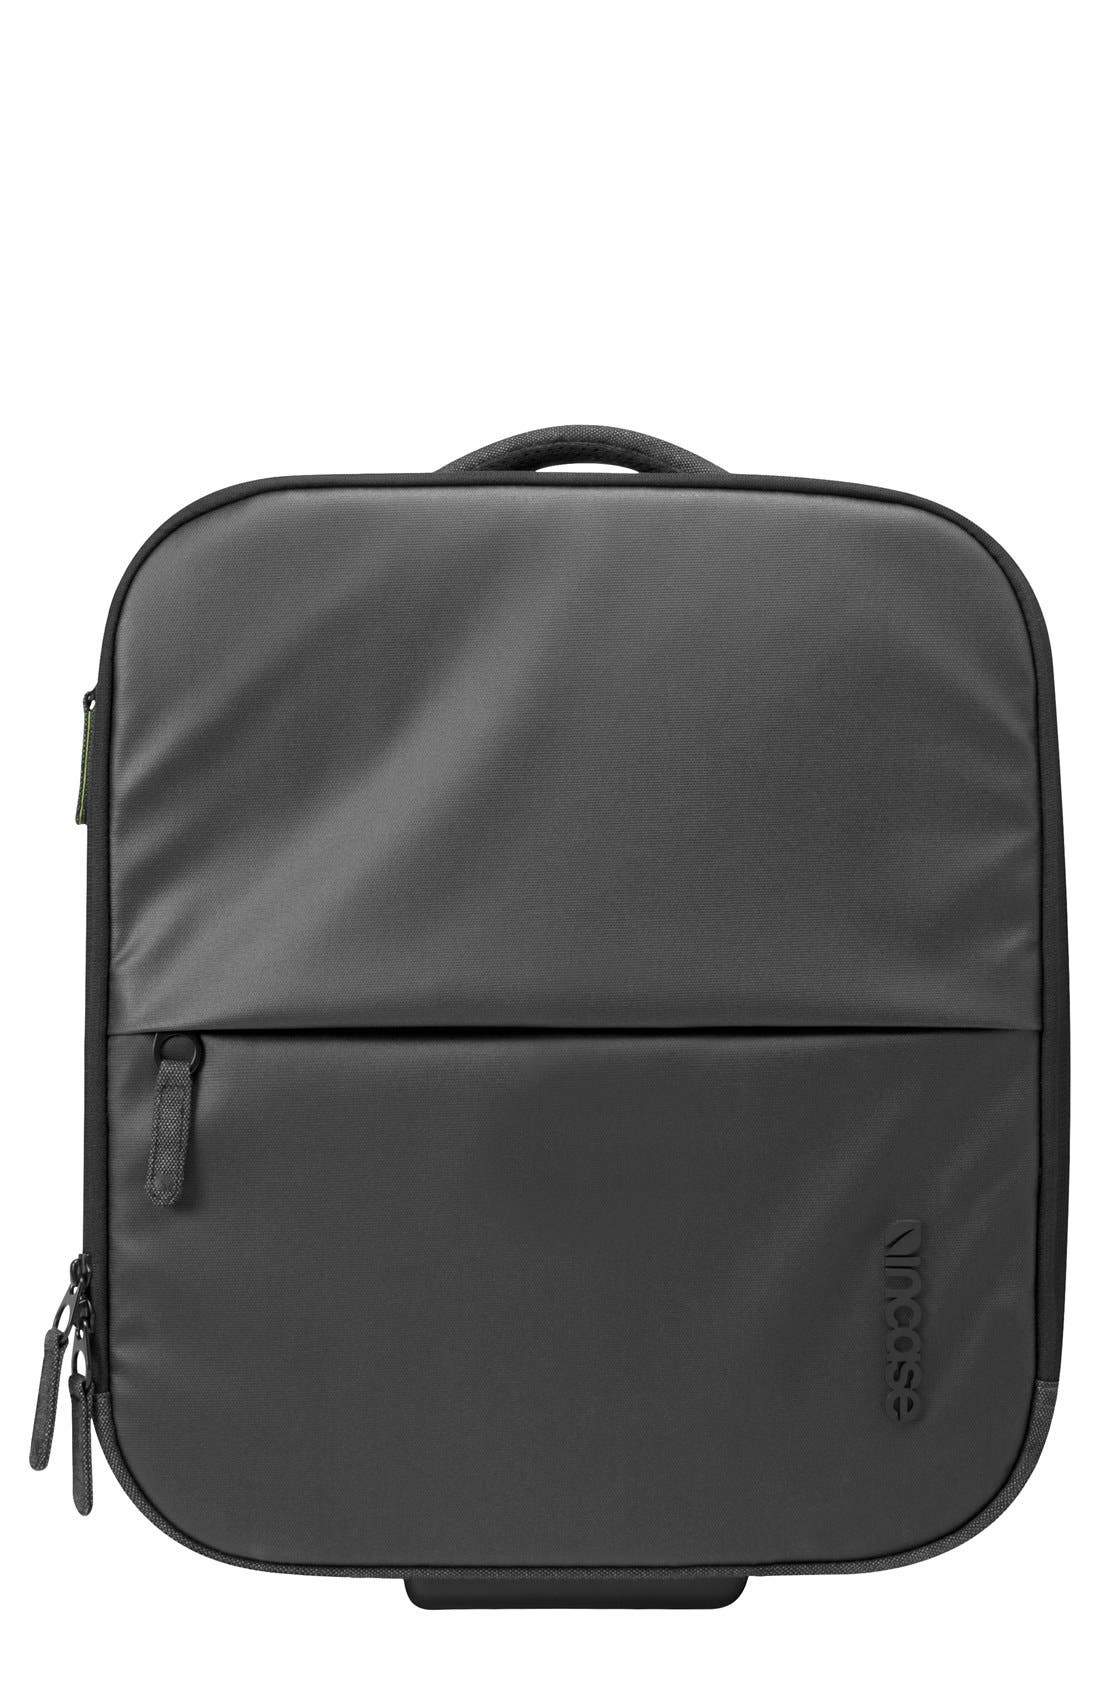 EO Wheeled Briefcase,                             Main thumbnail 1, color,                             Black